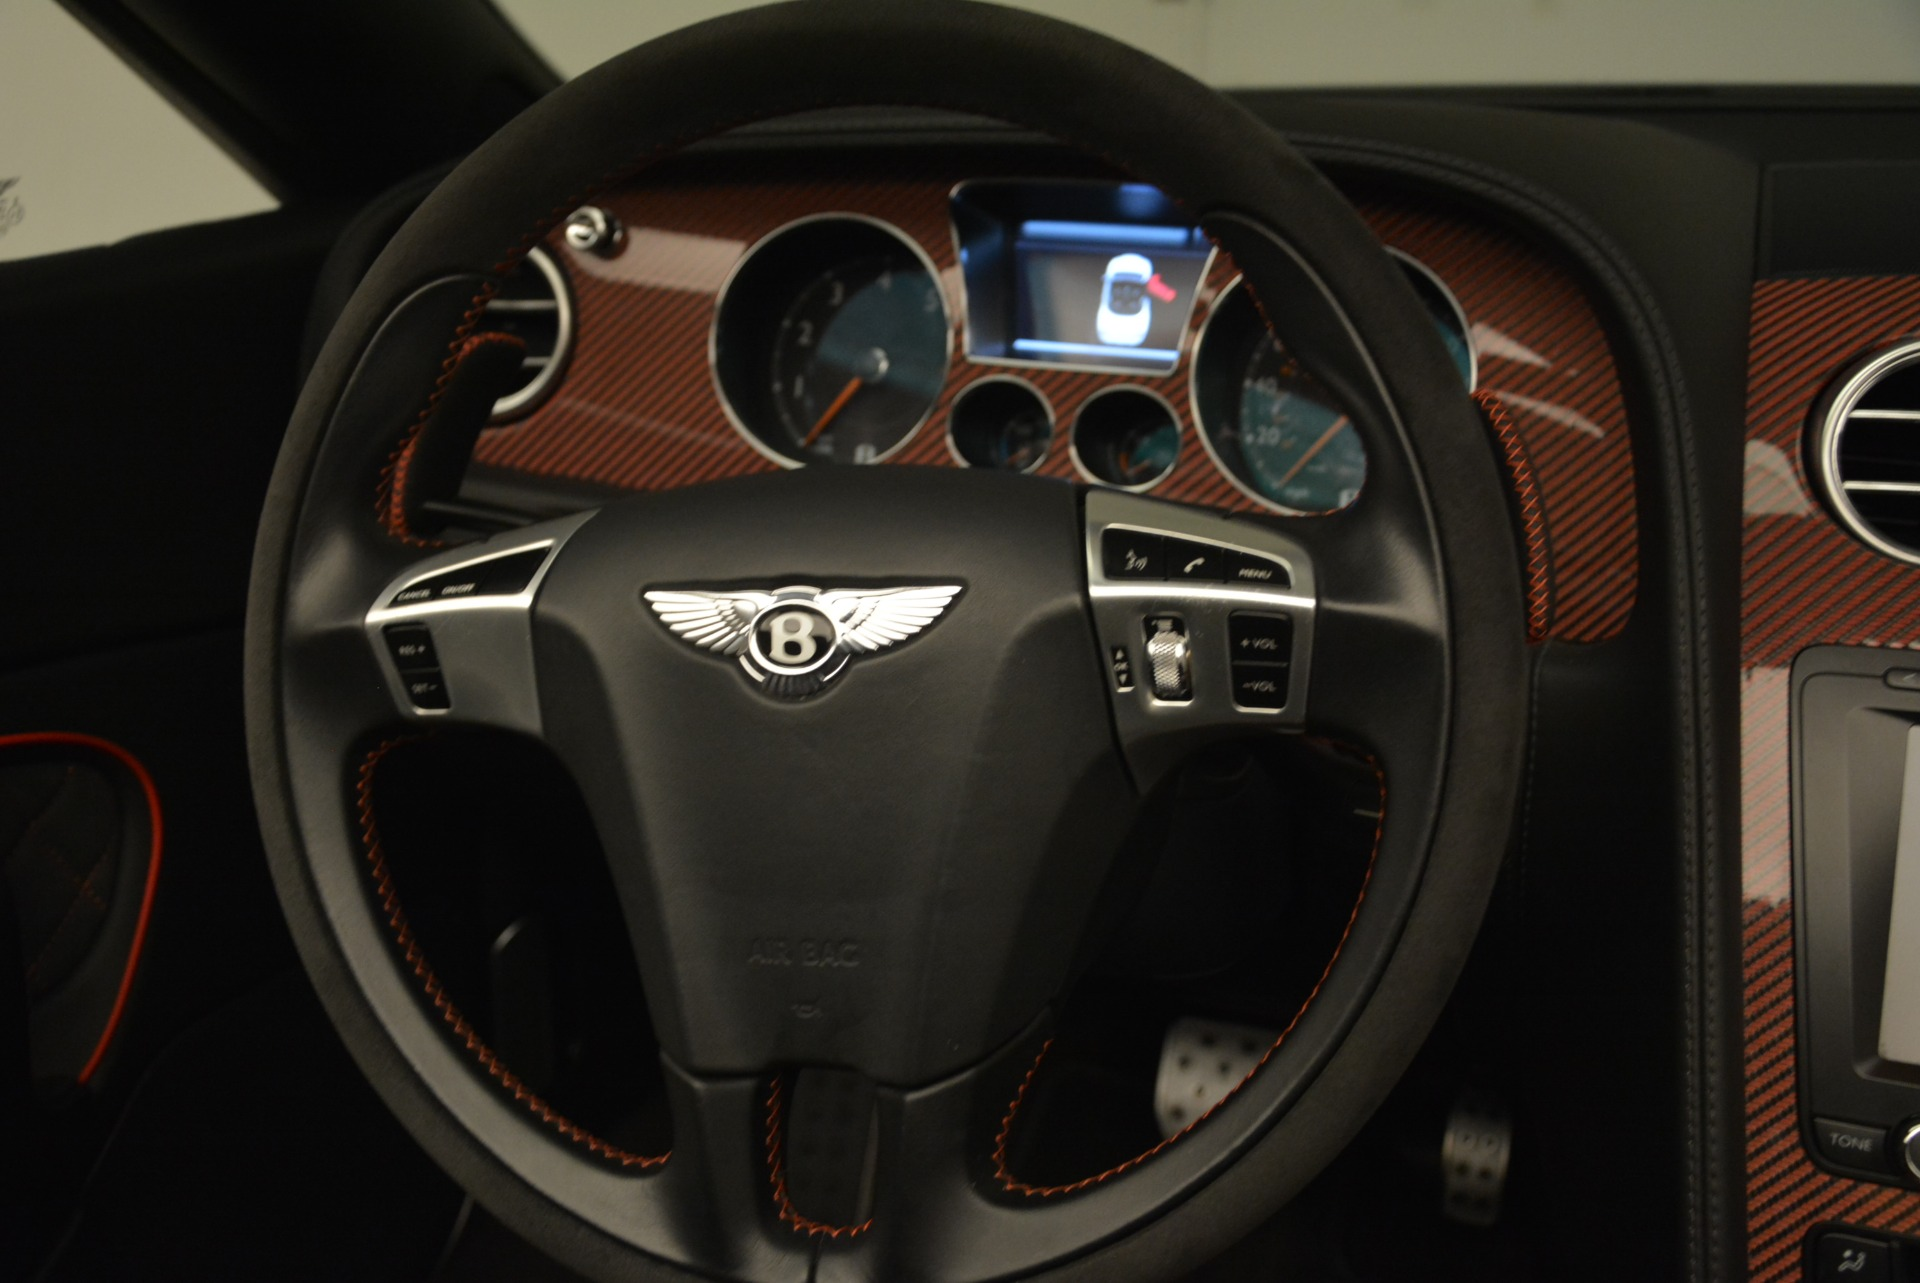 Used 2013 Bentley Continental GT Supersports Convertible ISR For Sale In Westport, CT 2151_p58